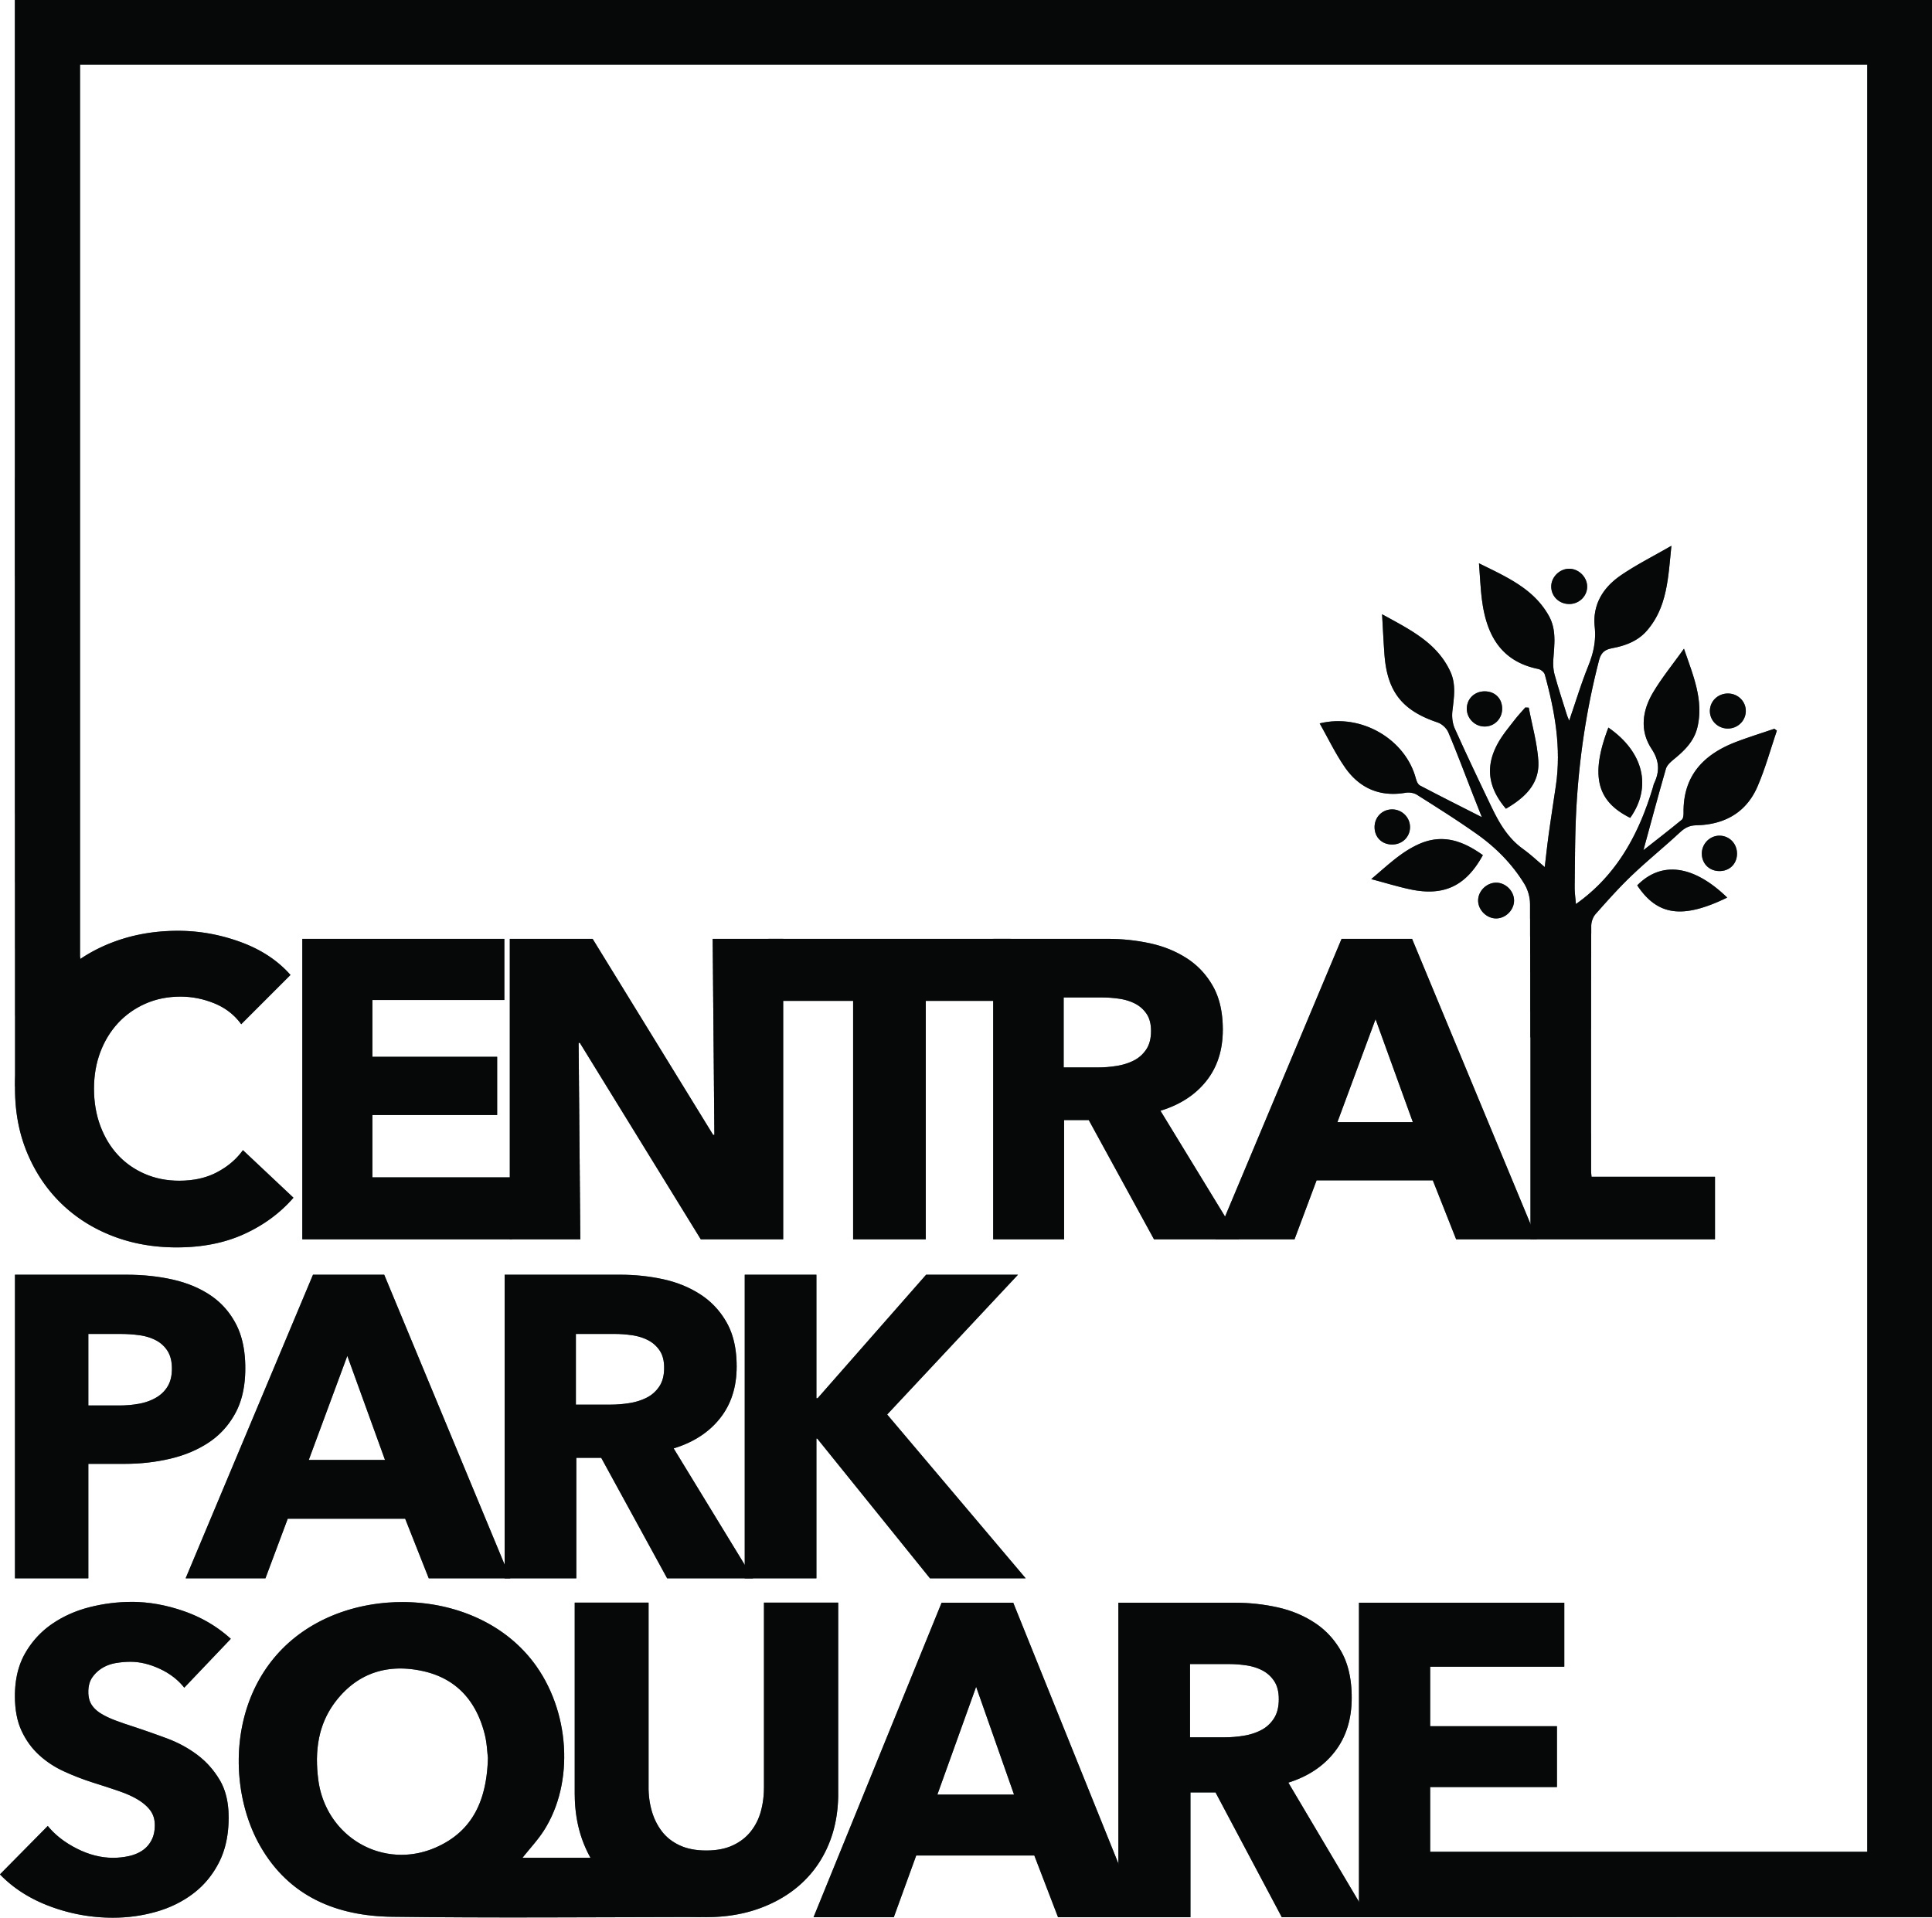 Central Park Square Johnstown, PA Centennial Financial Group, LLC